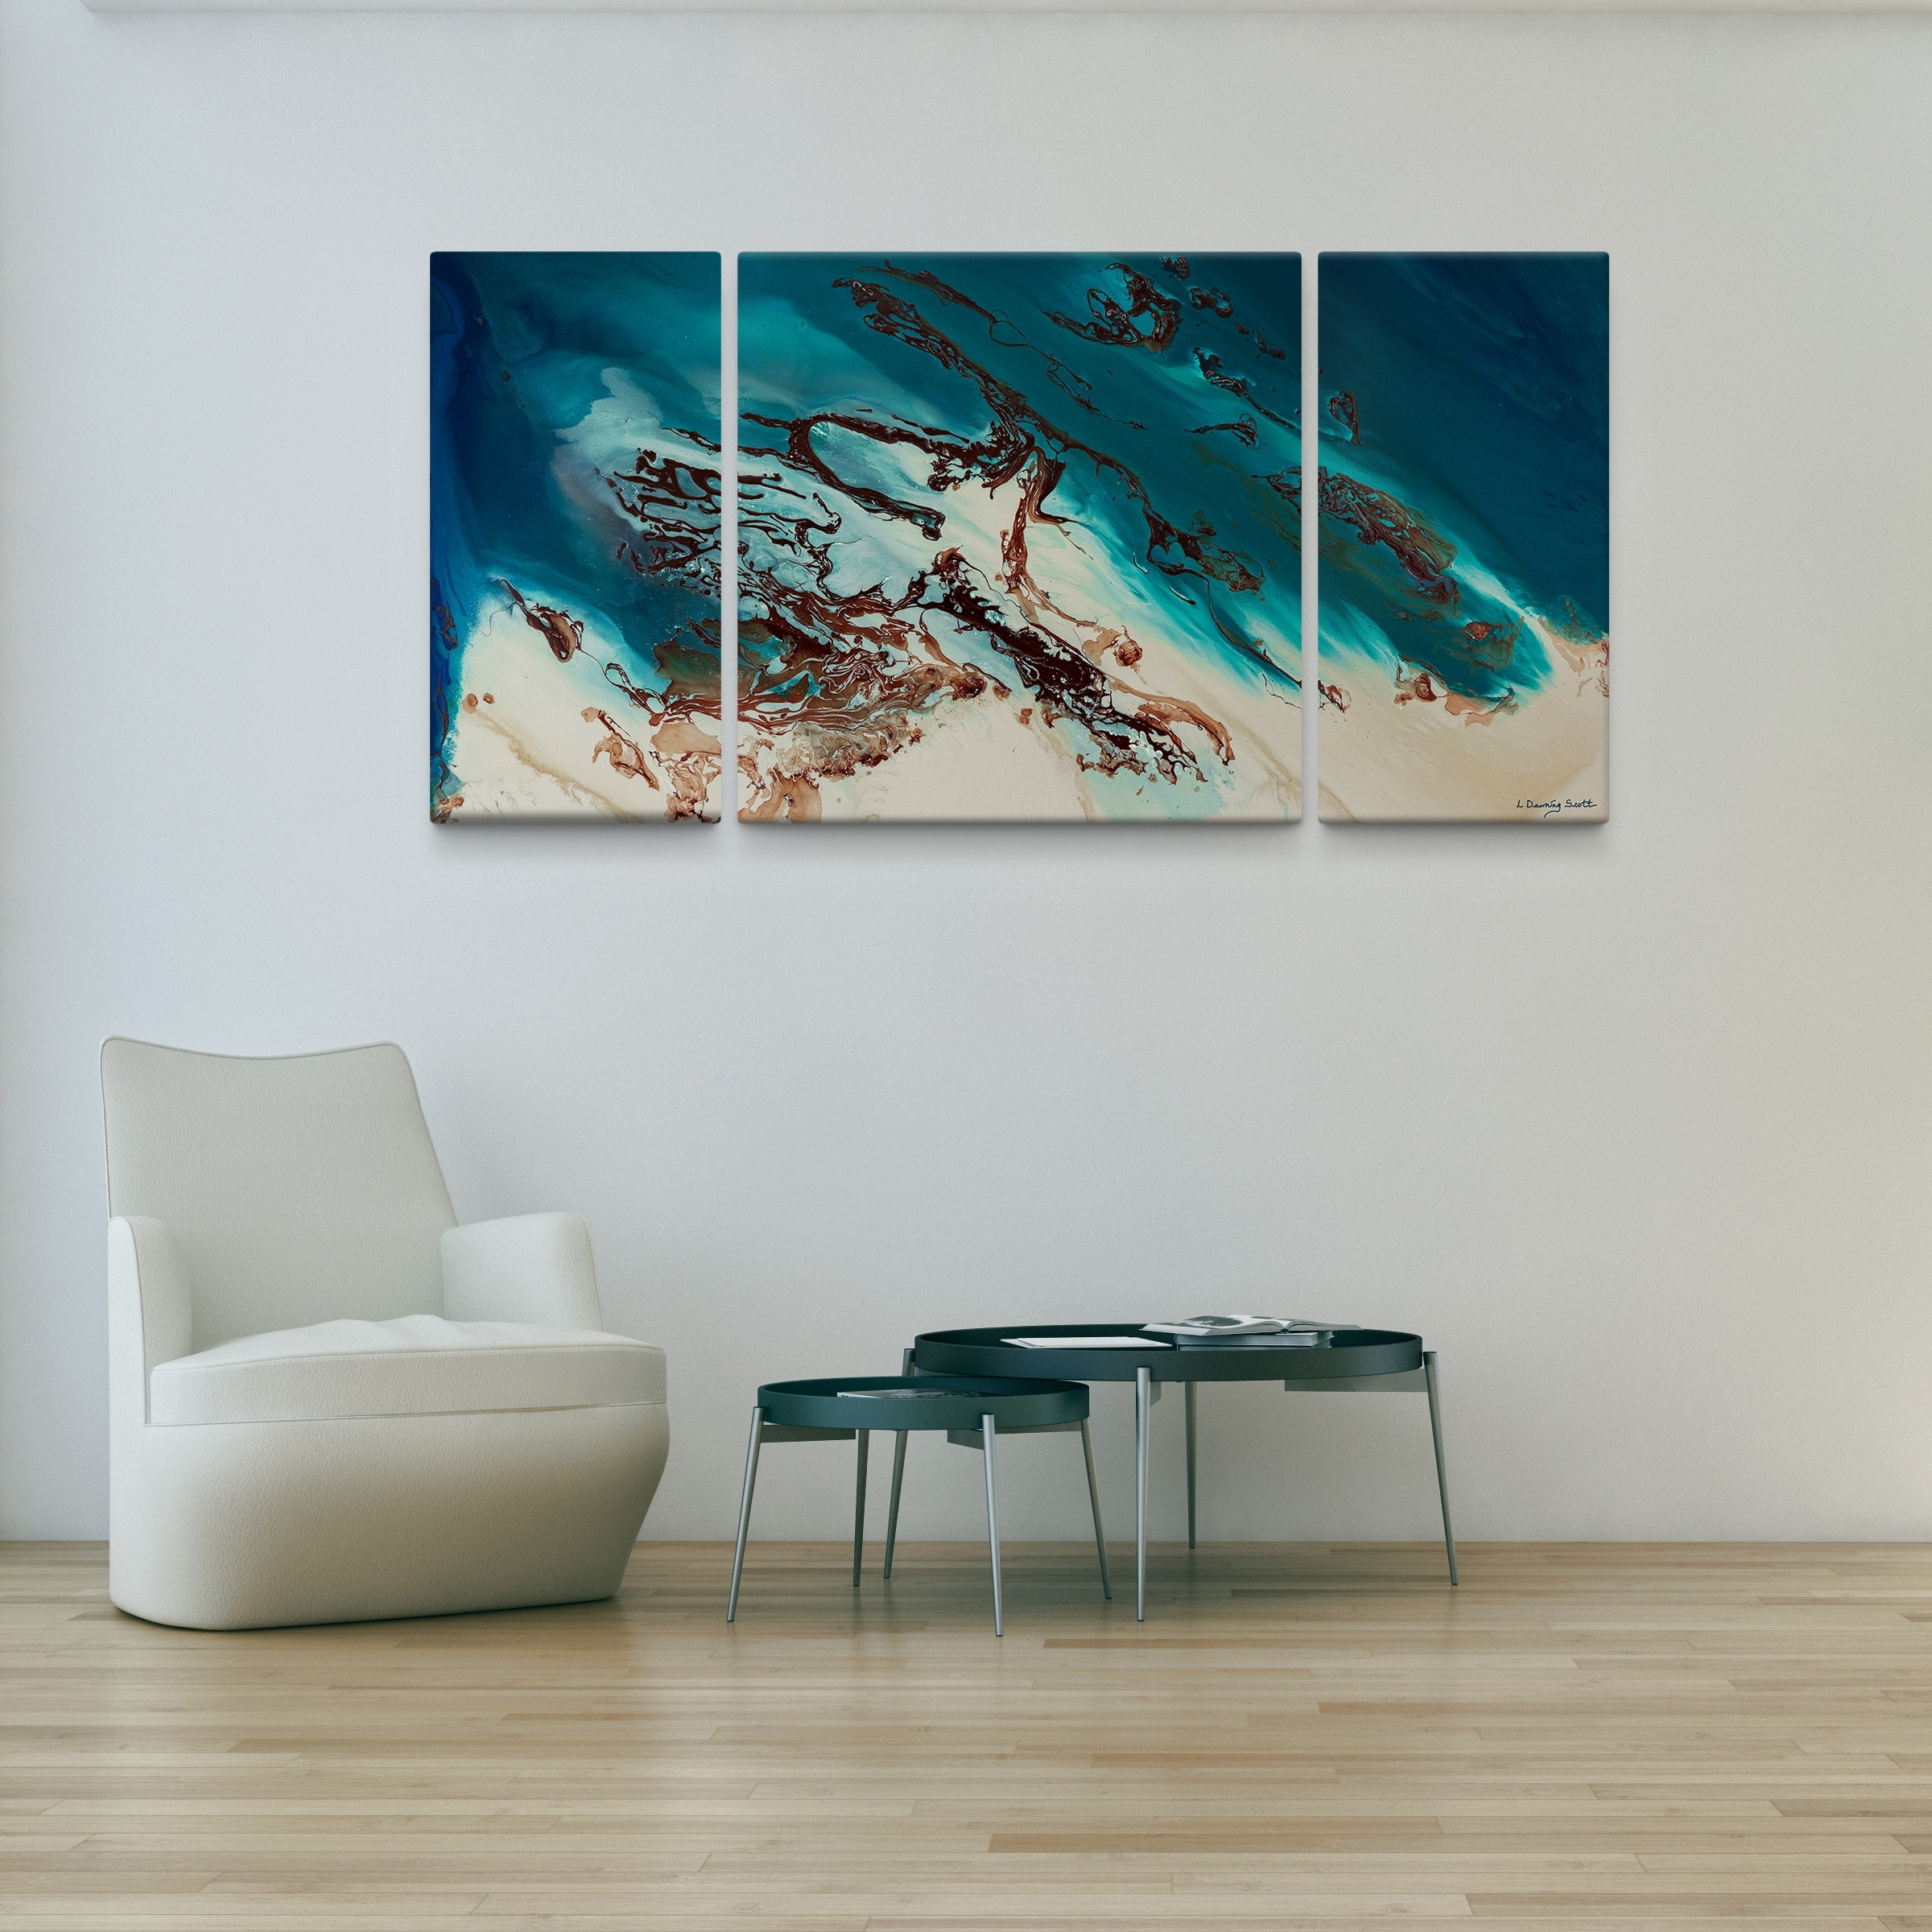 L Dawning Scott 'coastal Beauty' 30X60 Triptych Canvas Wall Art Intended For Recent Joval Canvas Wall Art (View 8 of 15)